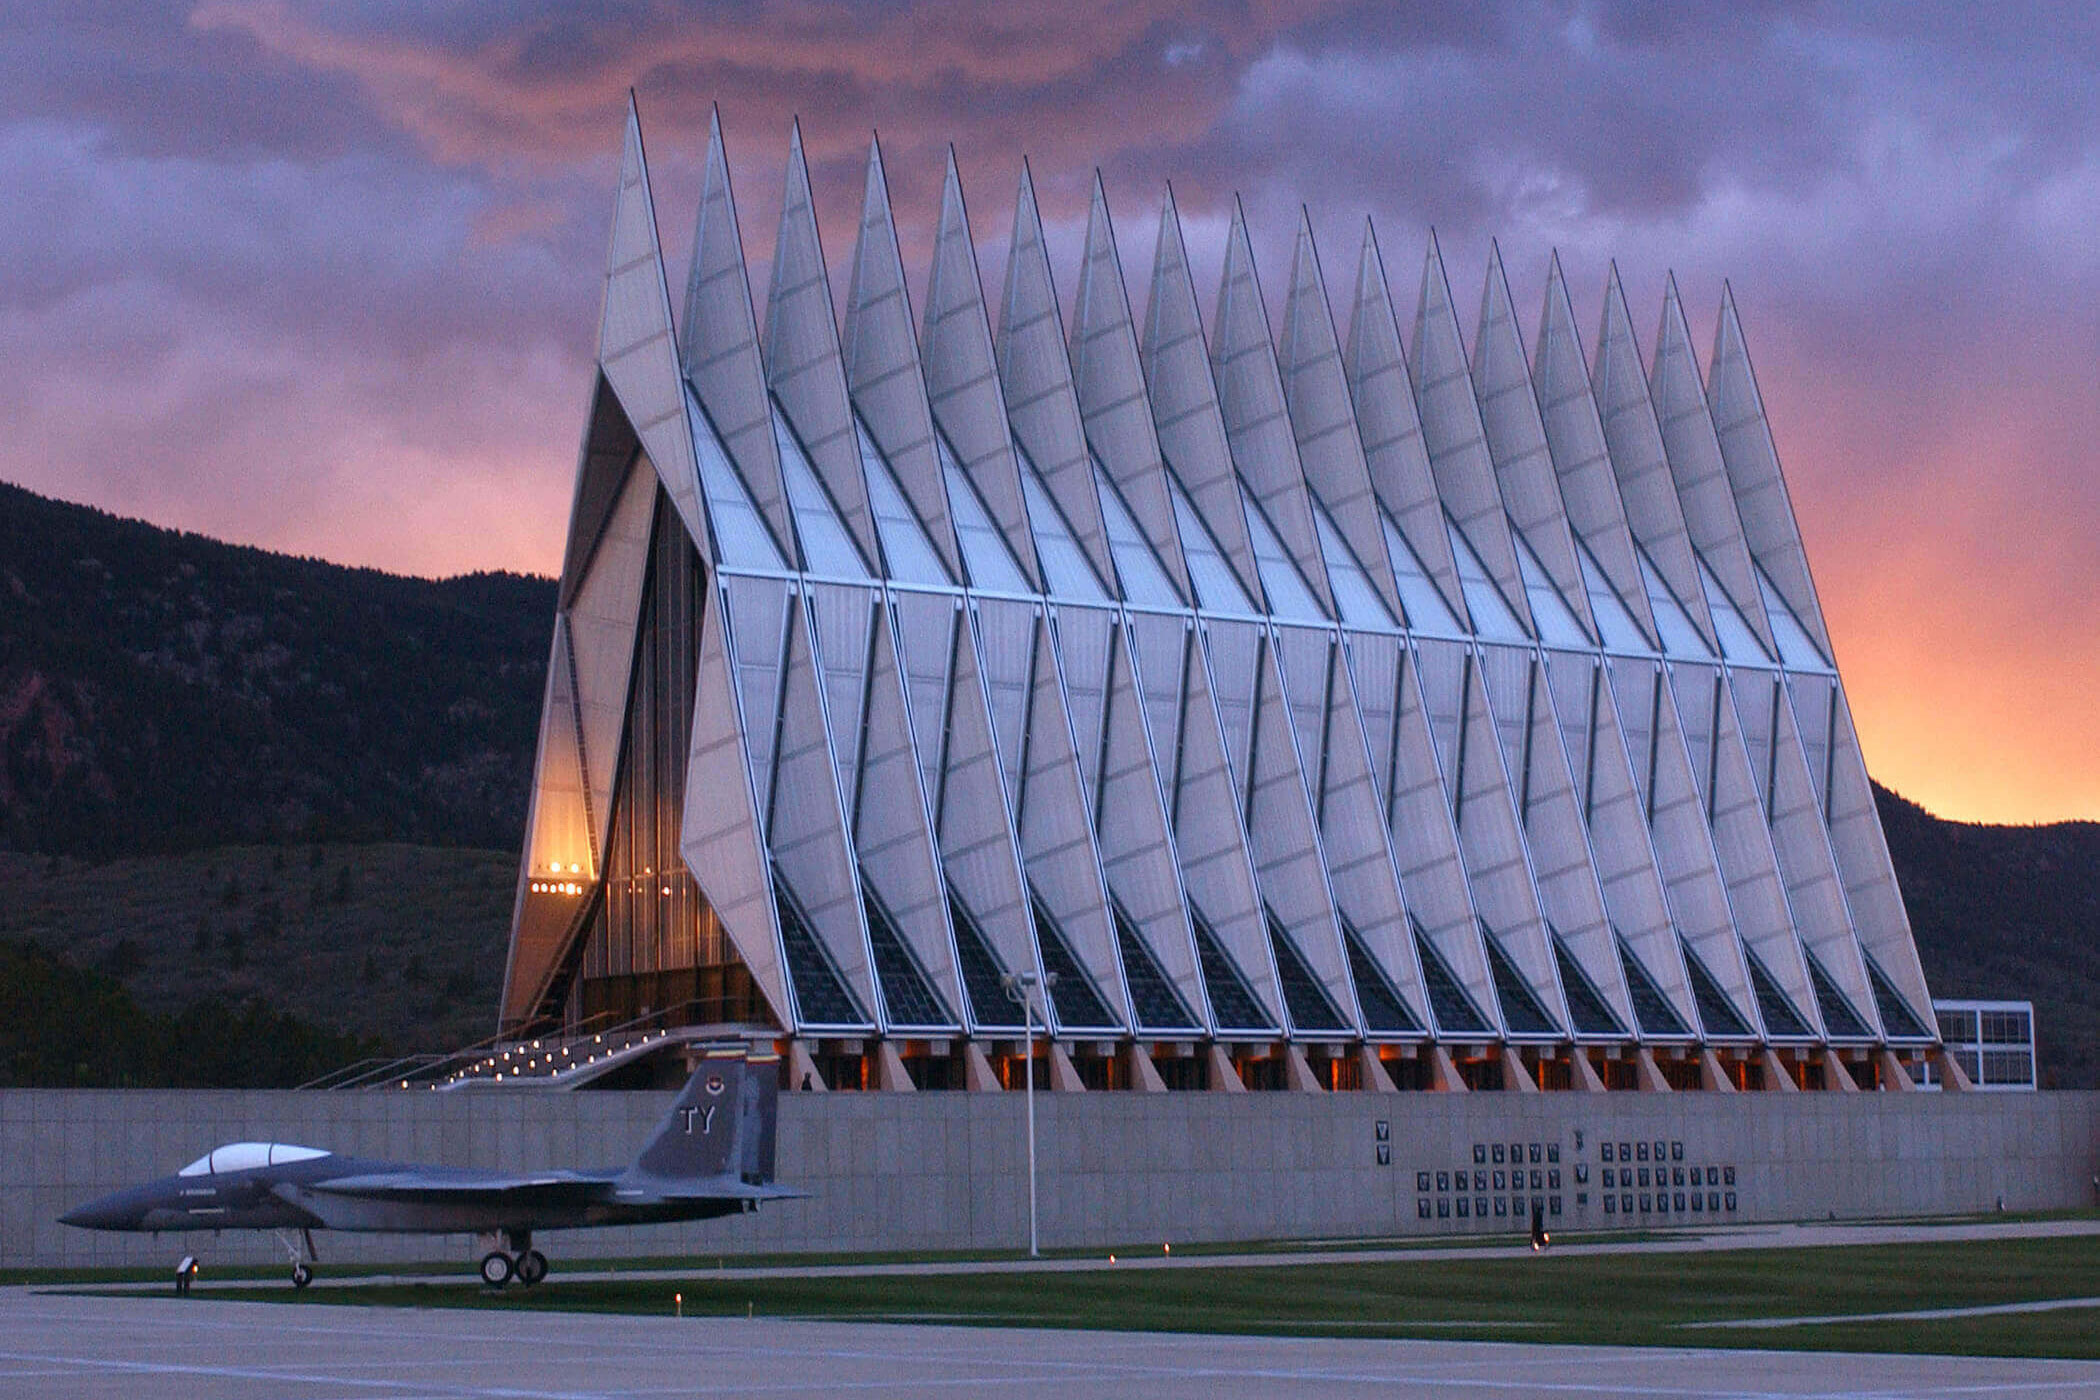 <p>The iconic multi-faith Cadet Chapel was designed by Walter Netsch and completed in 1962.</p>